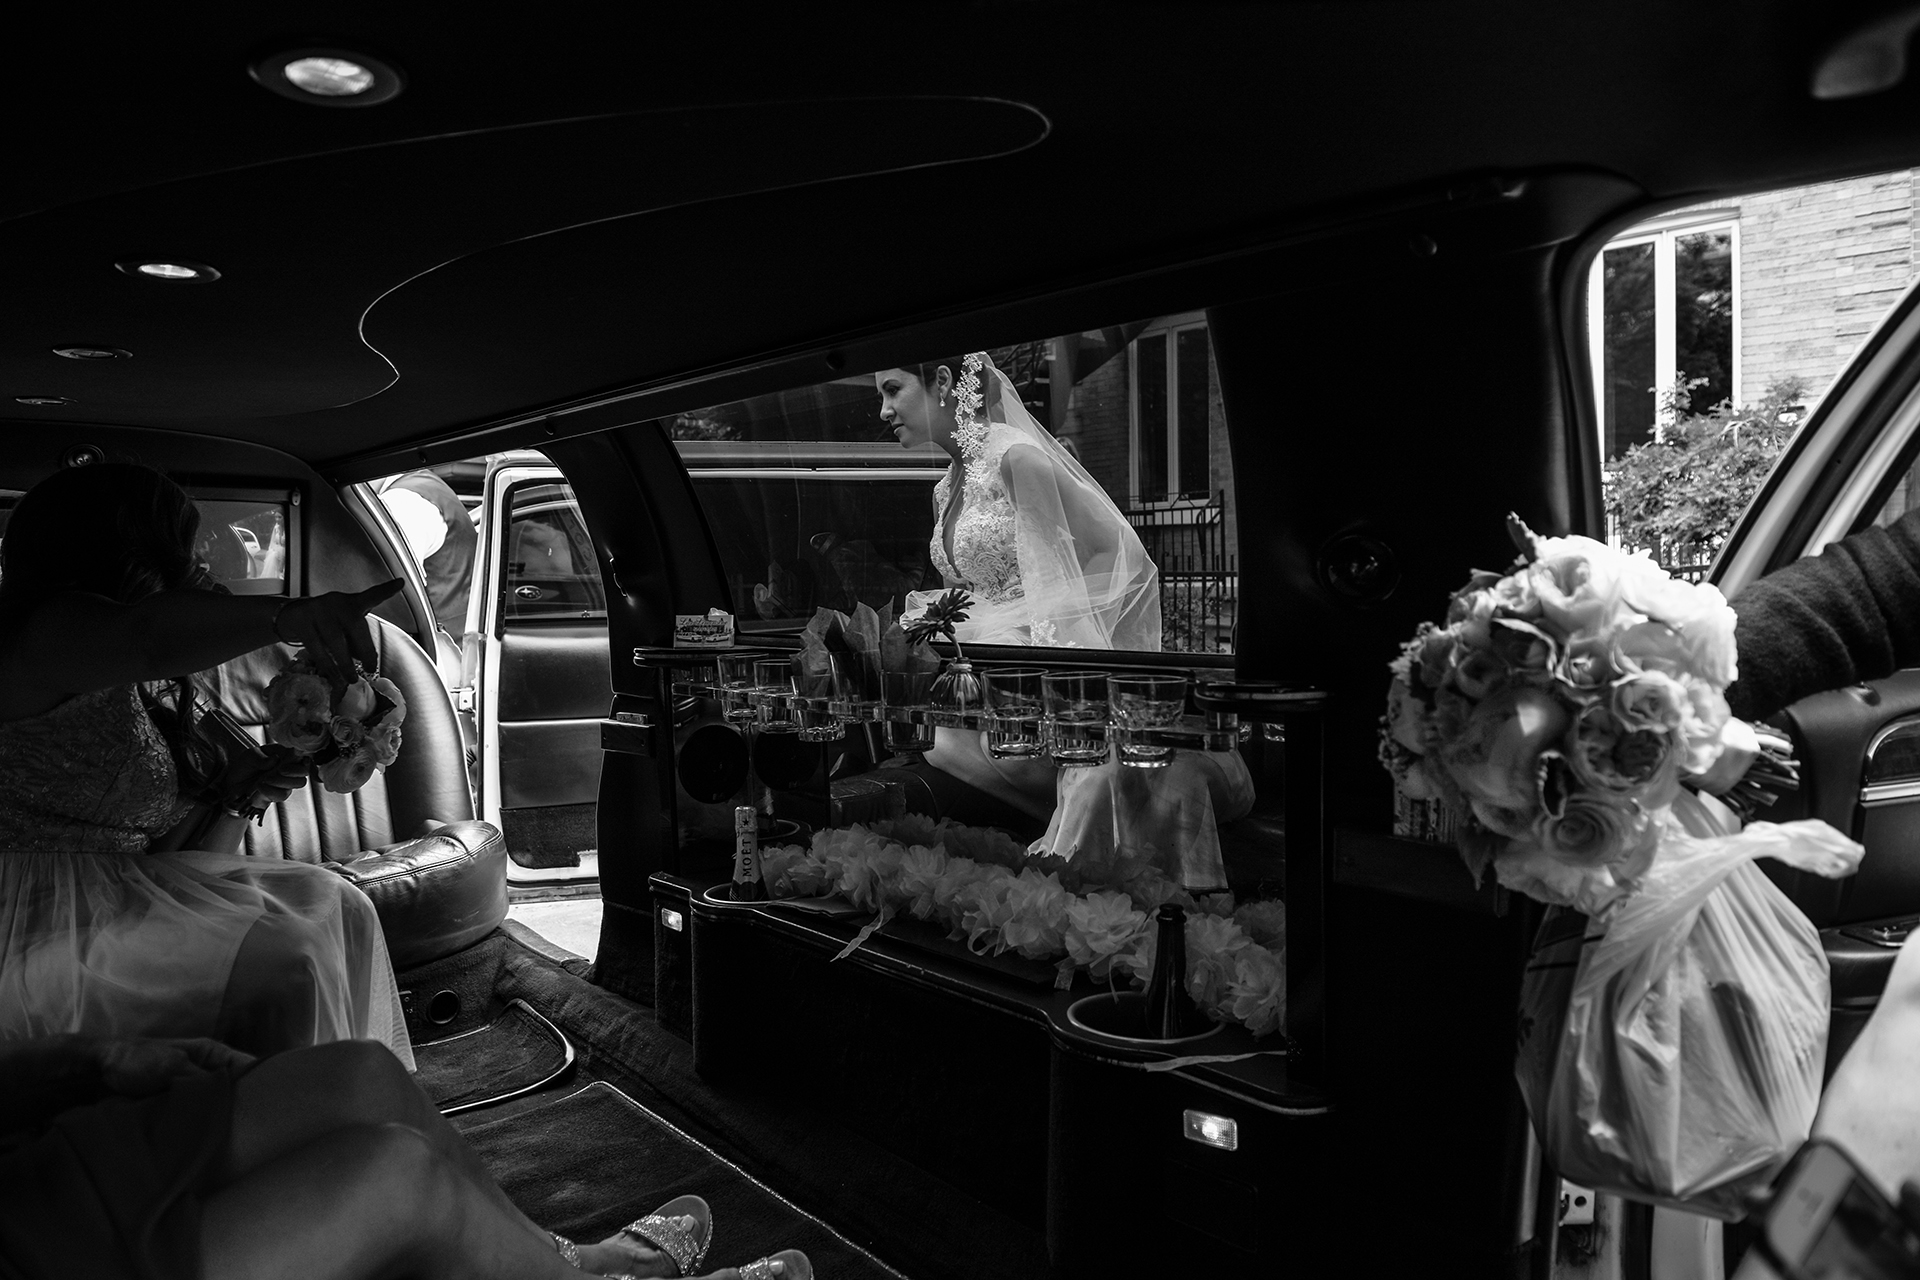 Adeline Leonti, of Quebec, is a wedding photographer for Place d'Armes Hotel, Montreal